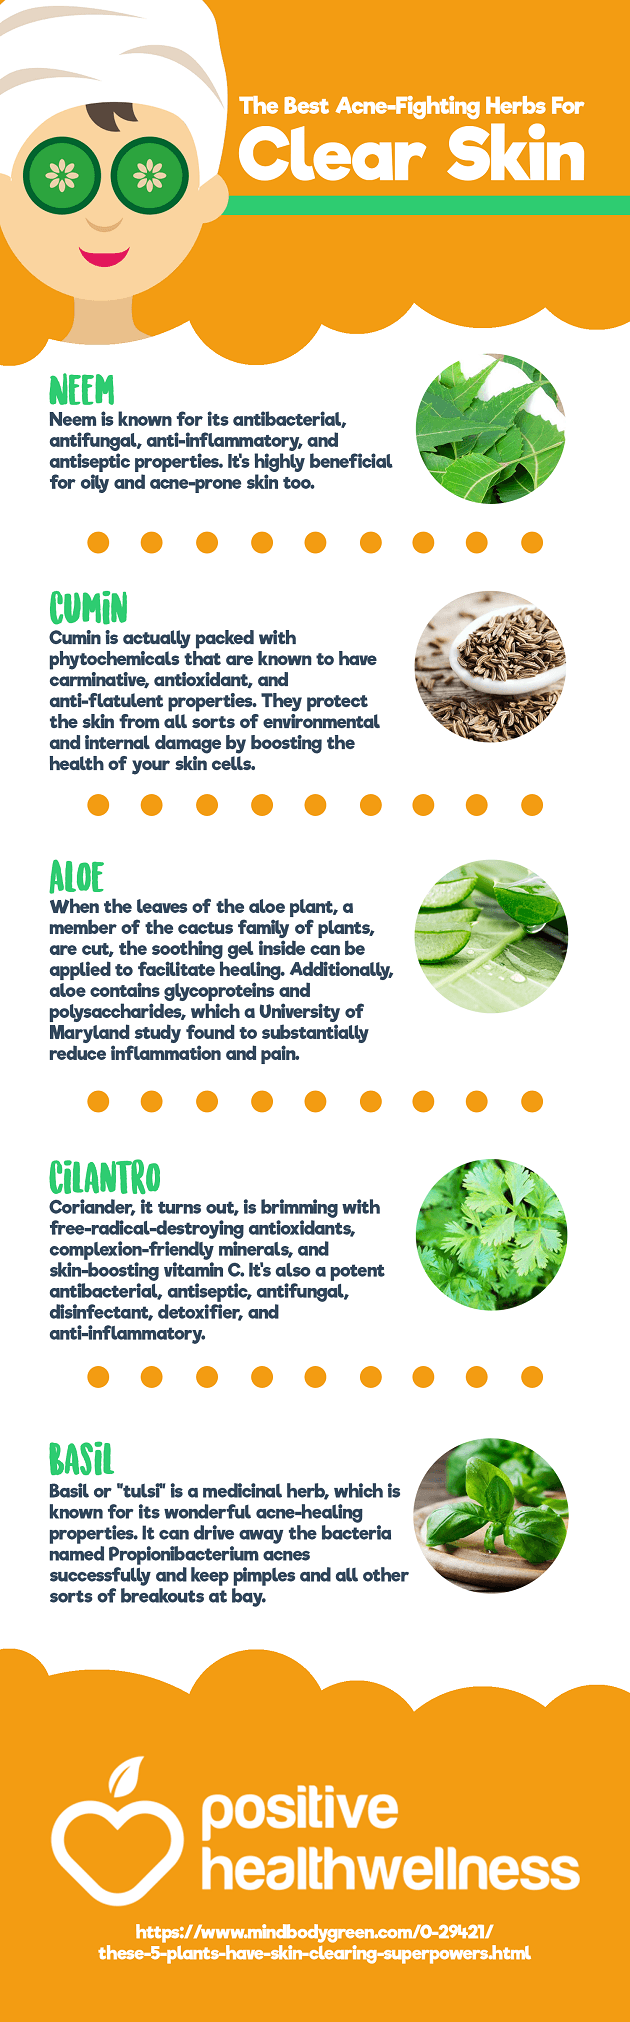 The Most Effect Acne-Fighting Herbs For Perfectly Clear Skin Infographic